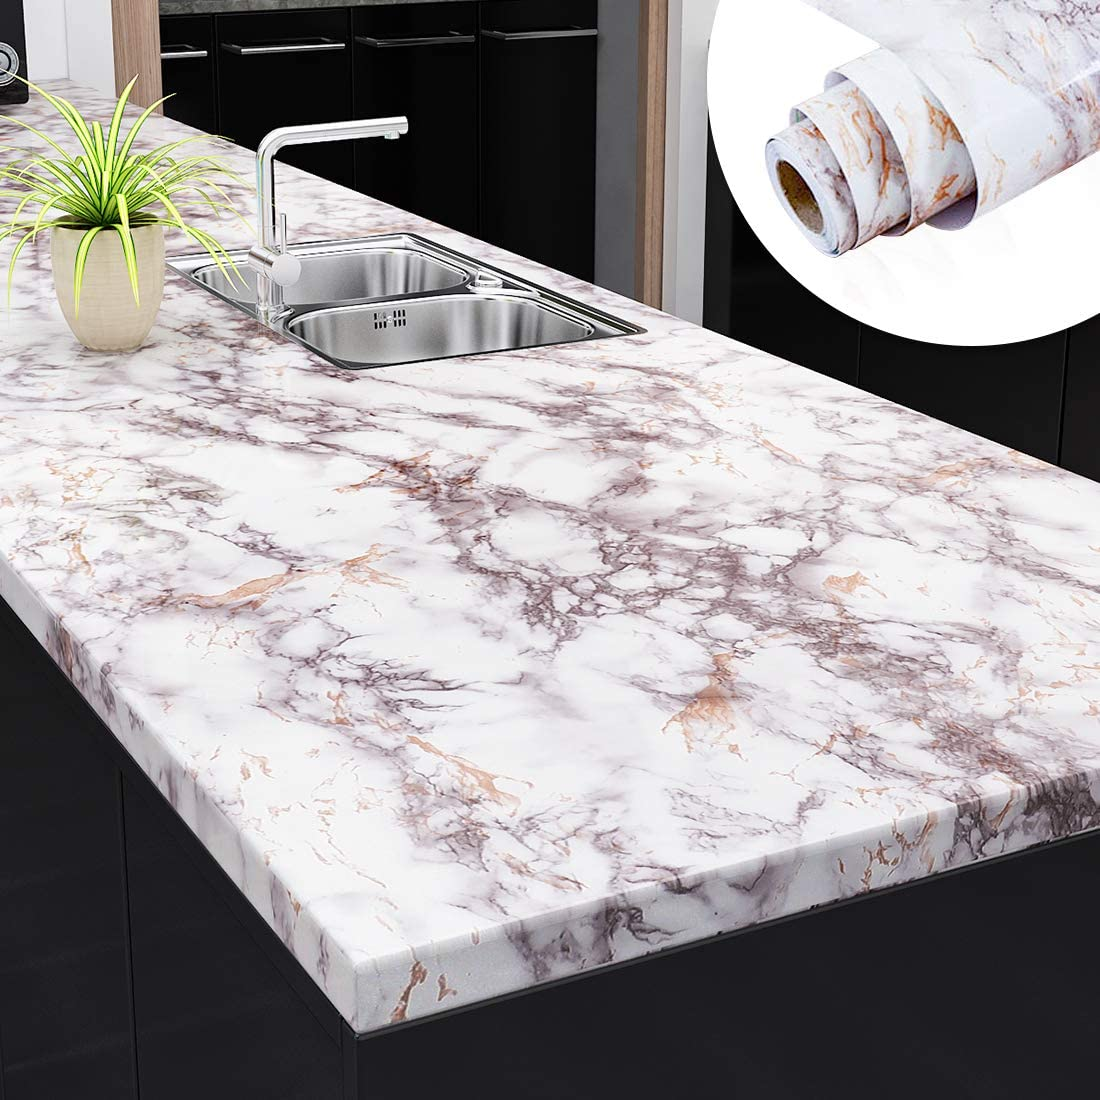 Yenhome Large Size 30x118 inch Grey Brown Contact Marble Peel and Stick Countertops for Kitchen Wallpaper Self Adhesive Removable Wallpaper Waterproof Countertop Contact Paper for Cabinets Shelf Liner